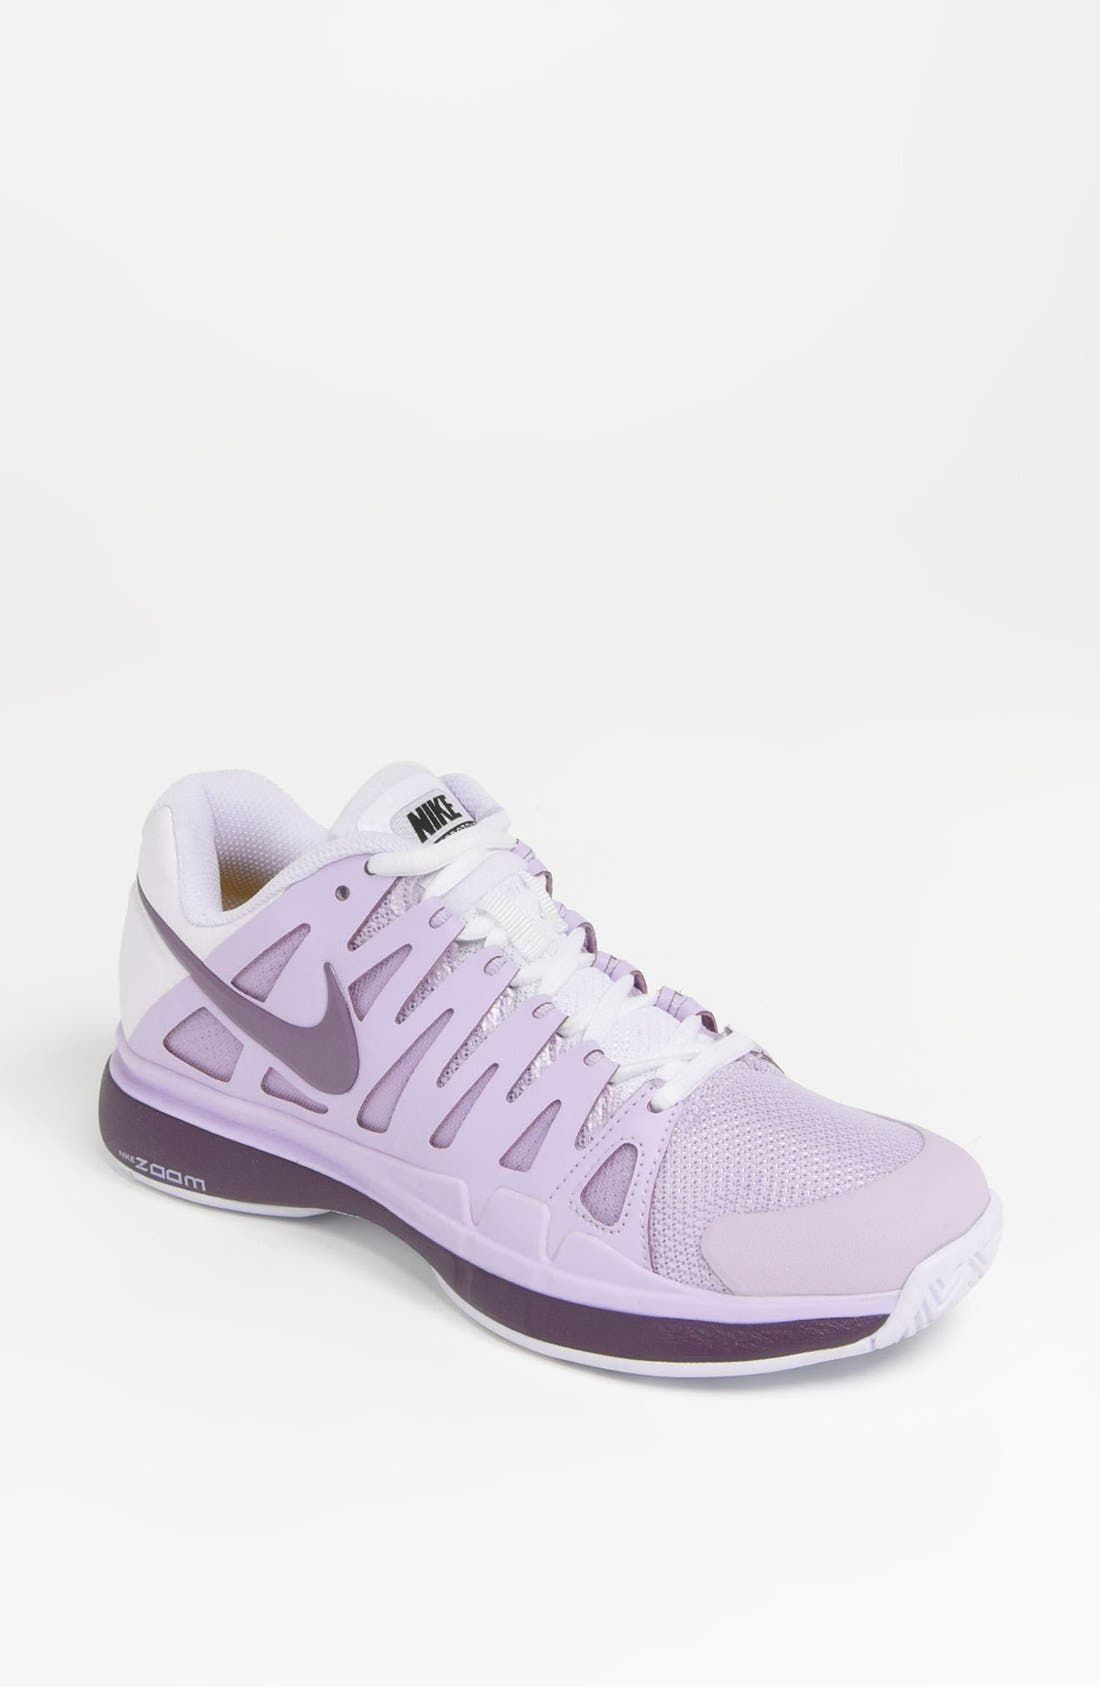 Alternate Image 1 Selected - Nike 'Zoom Vapor 9 Tour' Tennis Shoe (Women)